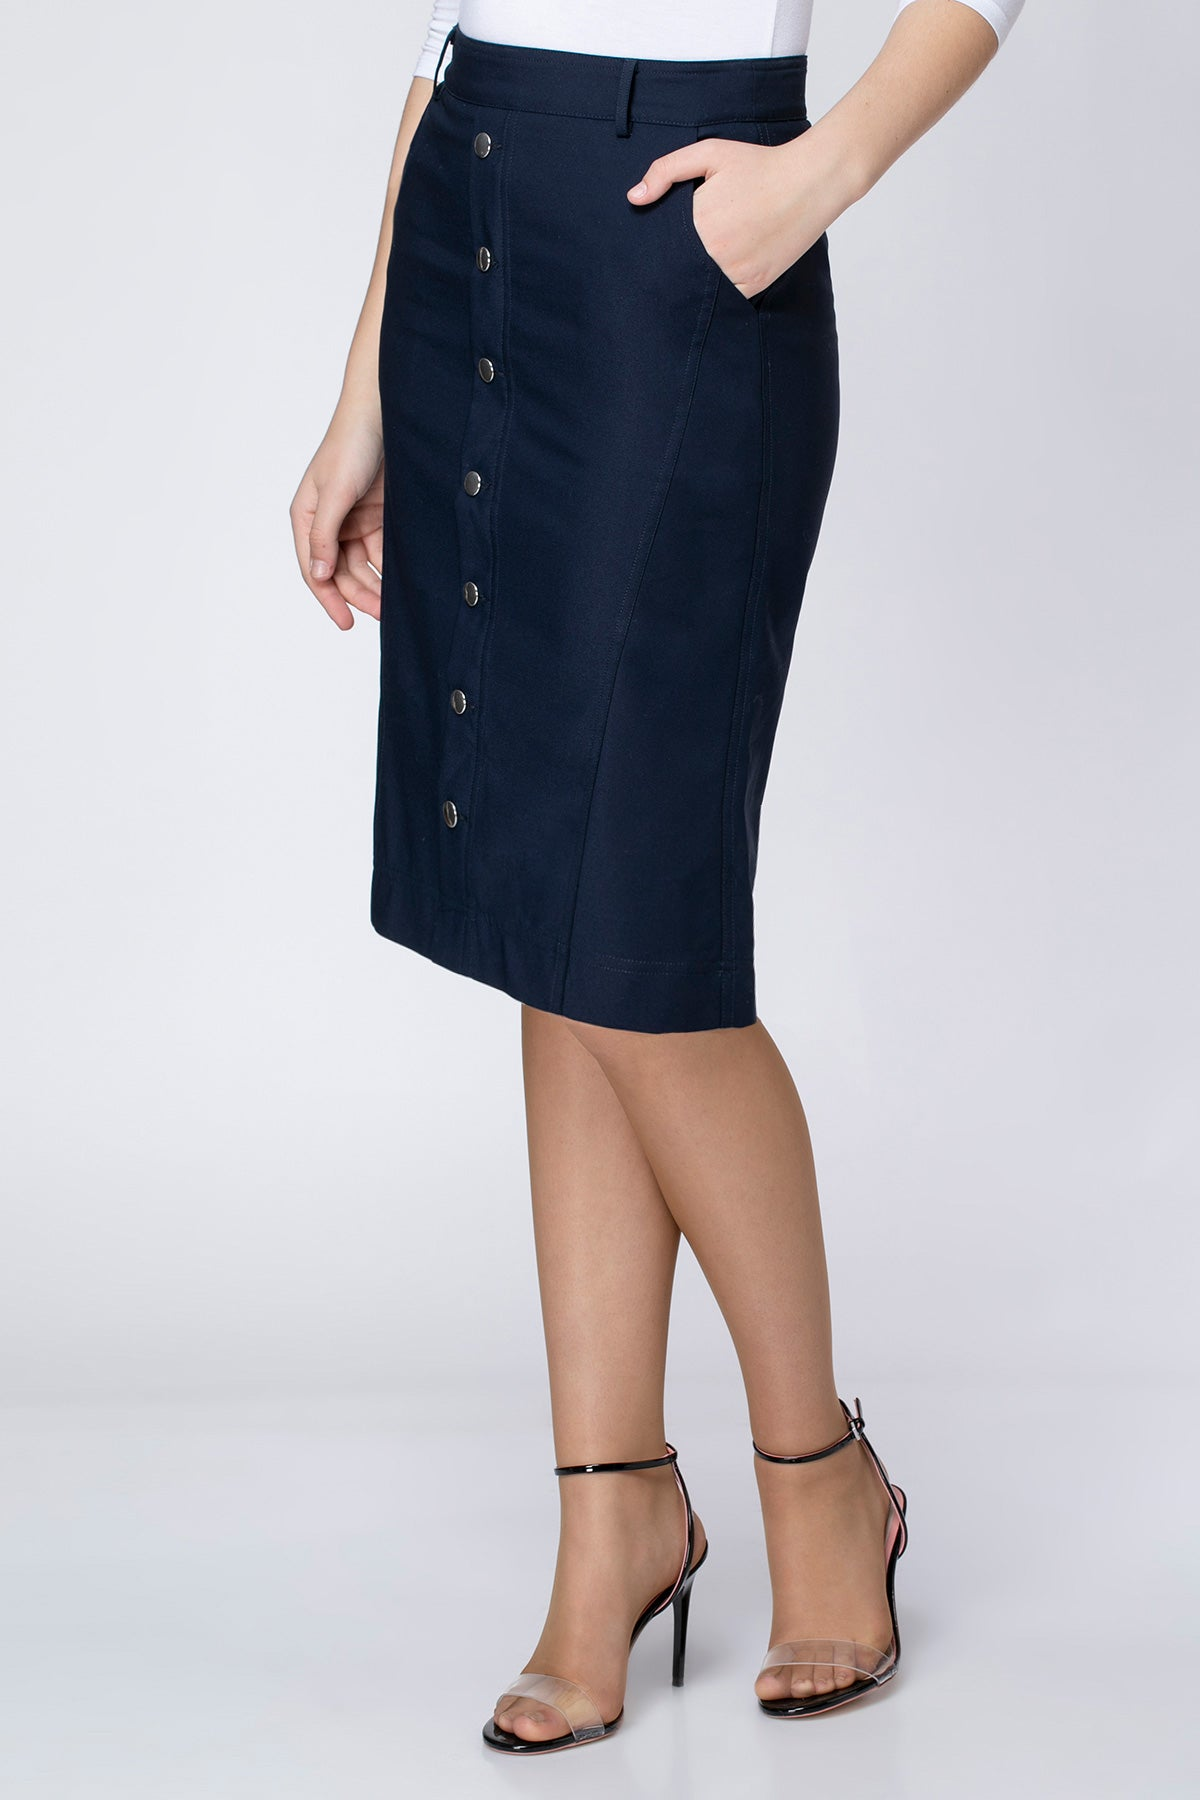 SKIRT WITH SNAPS